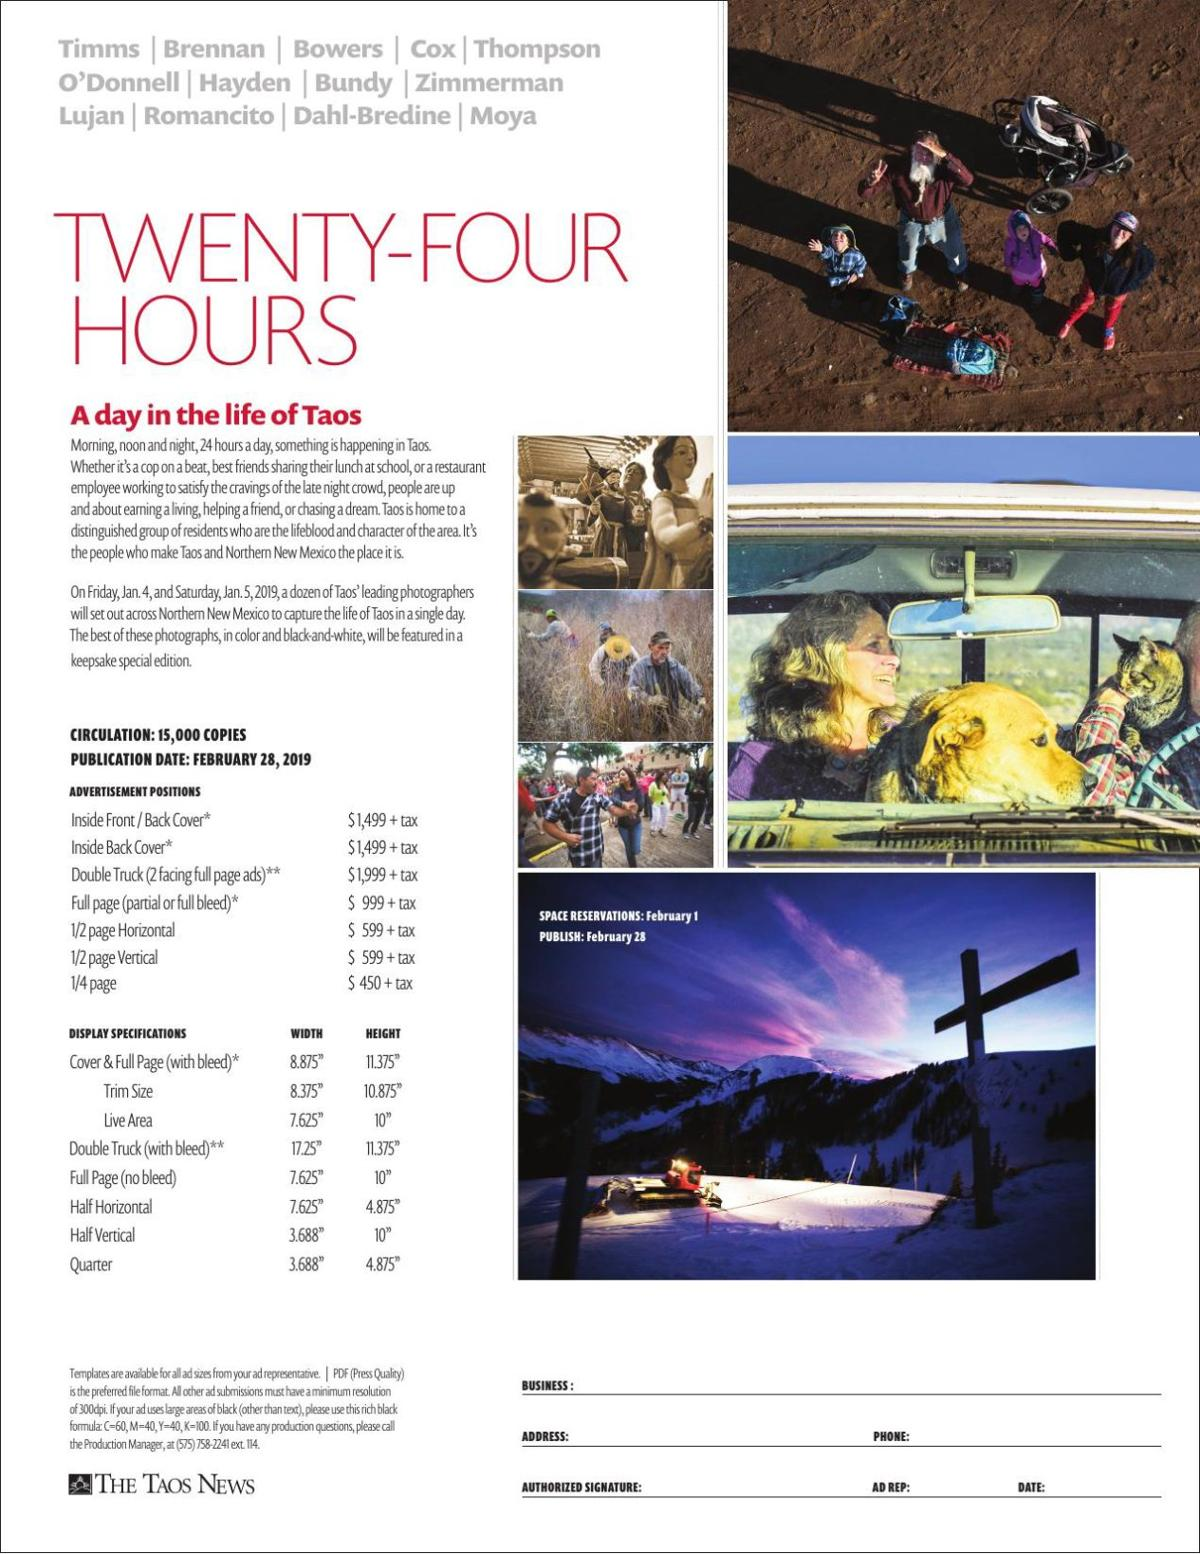 24 Hours of Taos